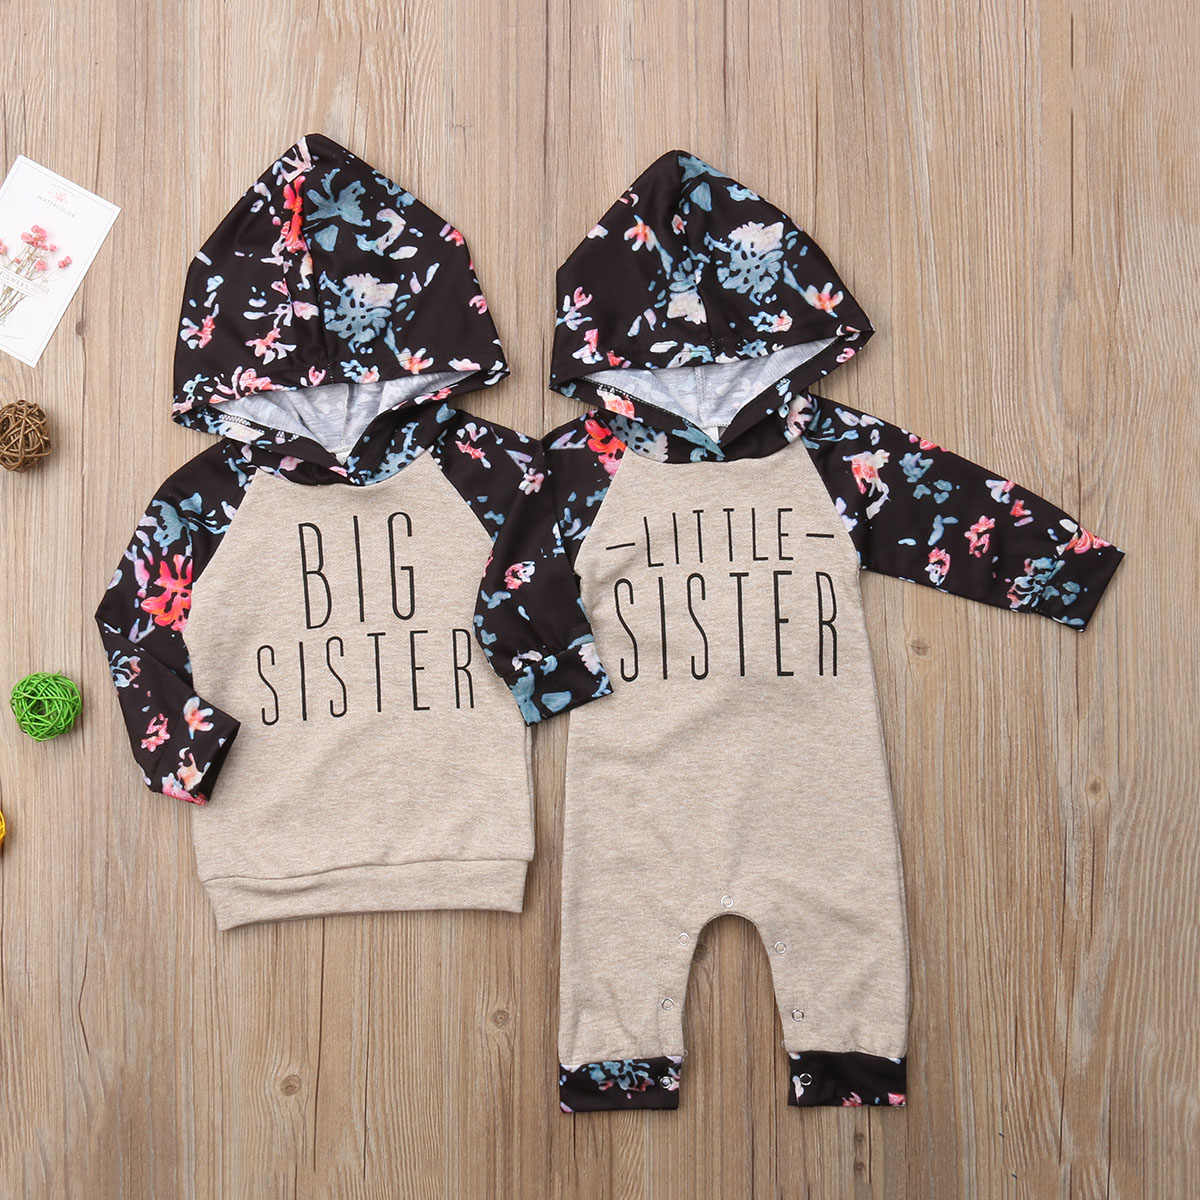 Little Sister Big Sister Match Clothes Kids Hooded Sweatshirt Baby Girl Romper and Hoodie Top